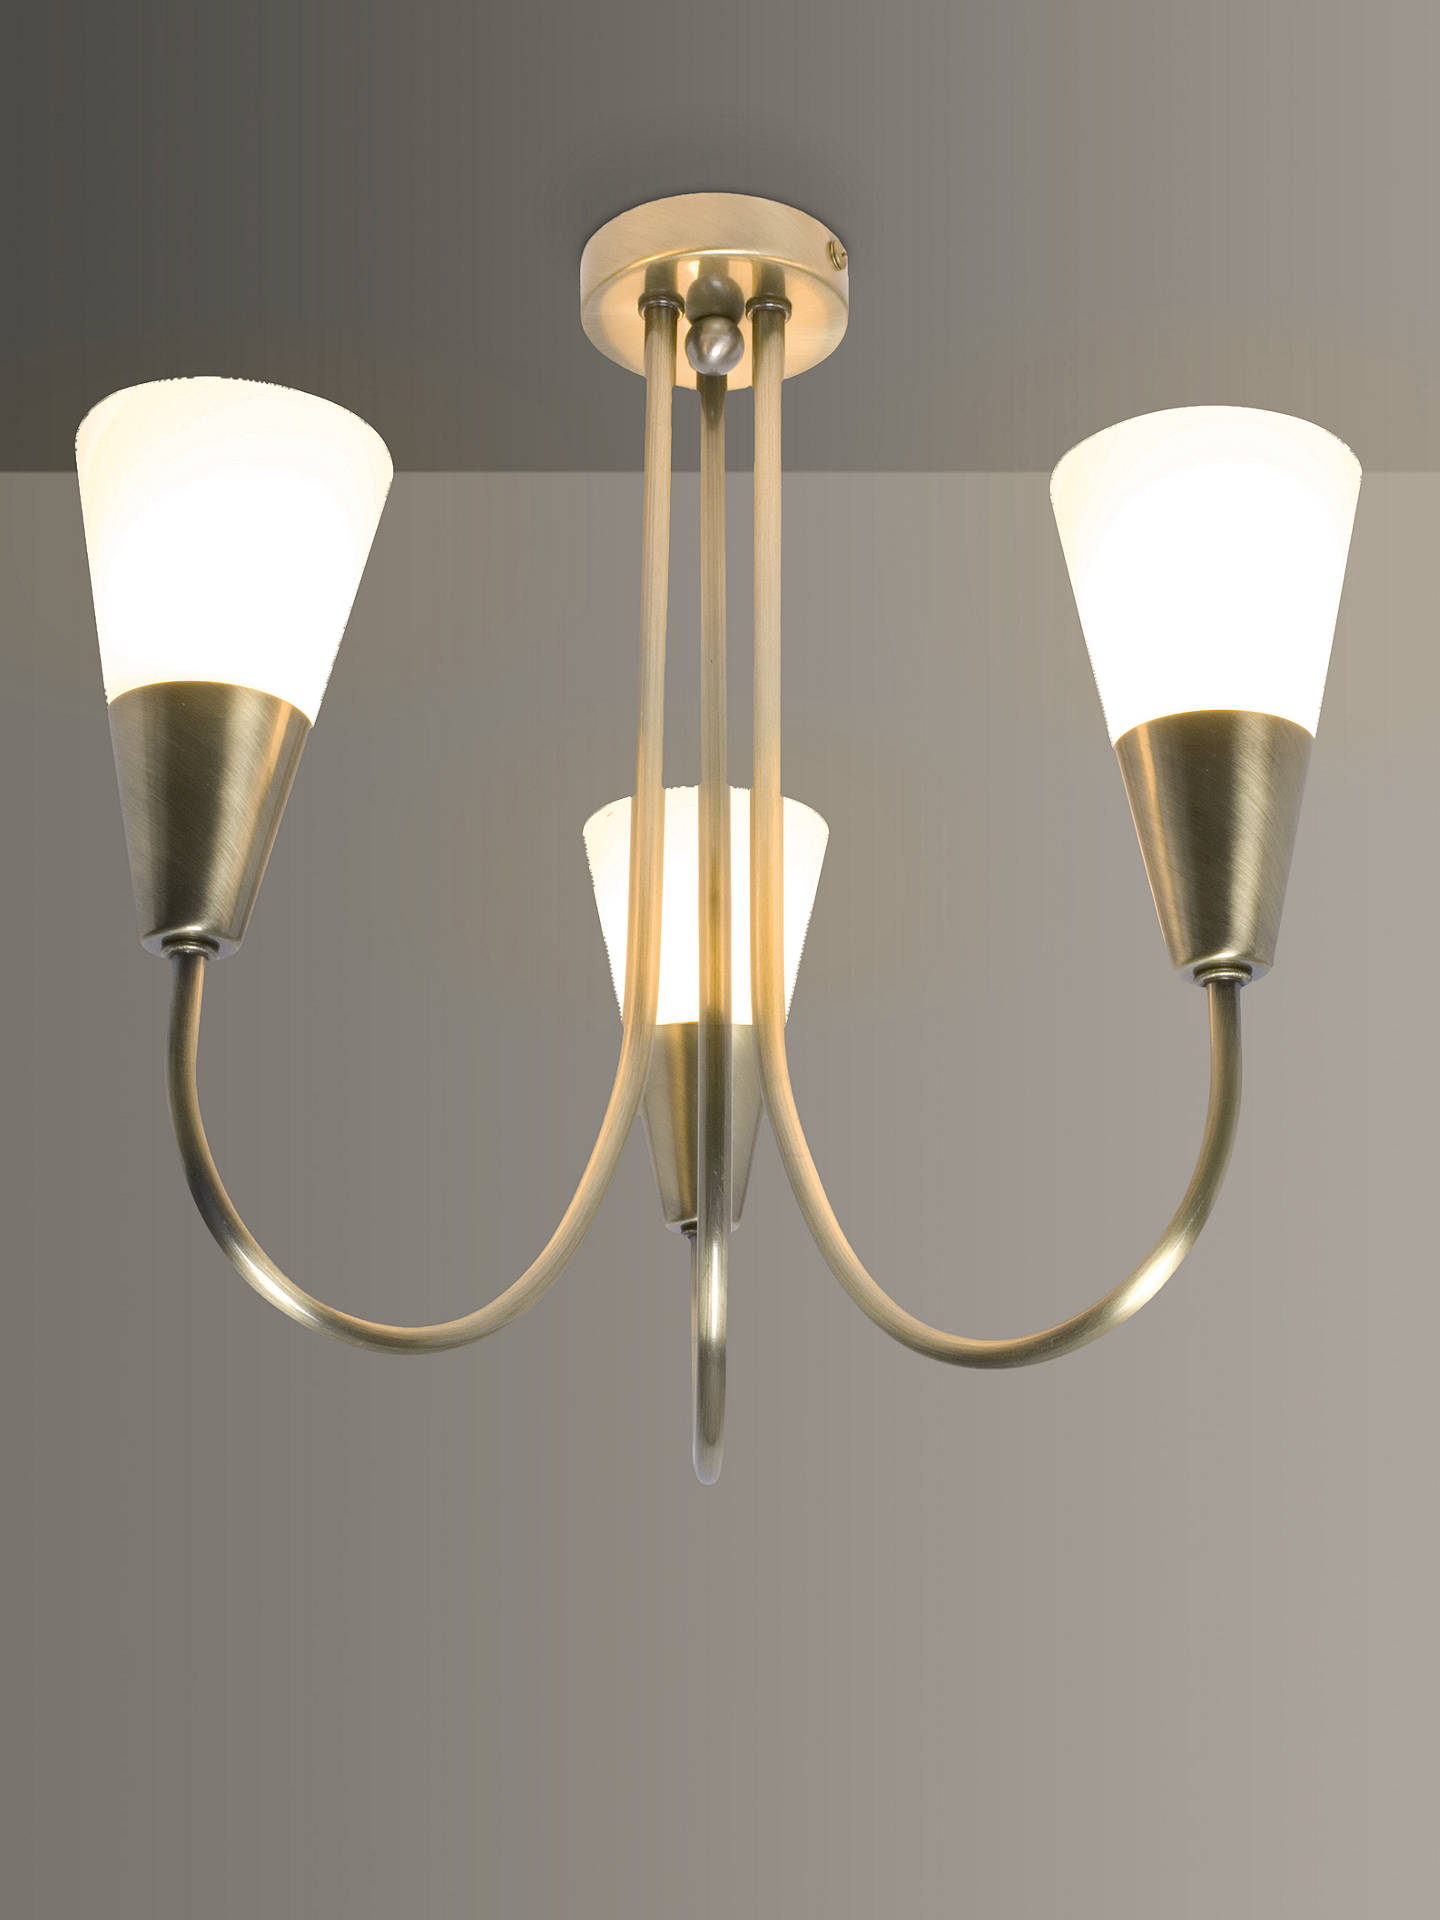 Buy John Lewis & Partners Lulu 3 Arm Ceiling Light, Antique Brass Online at johnlewis.com